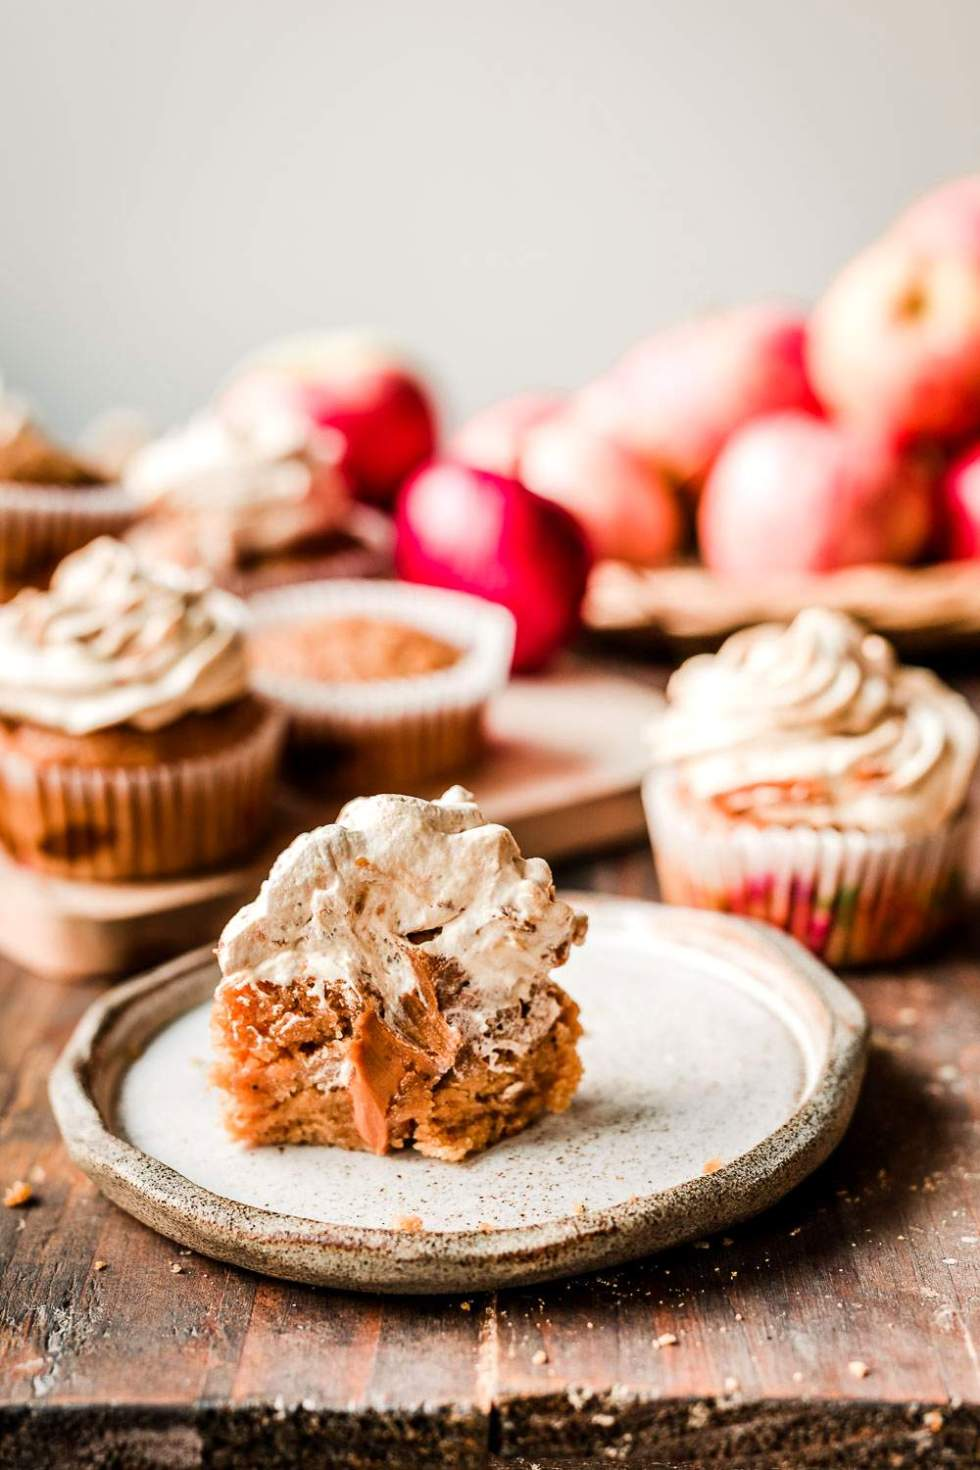 Applesauce Cupcakes with Biscoff Frosting